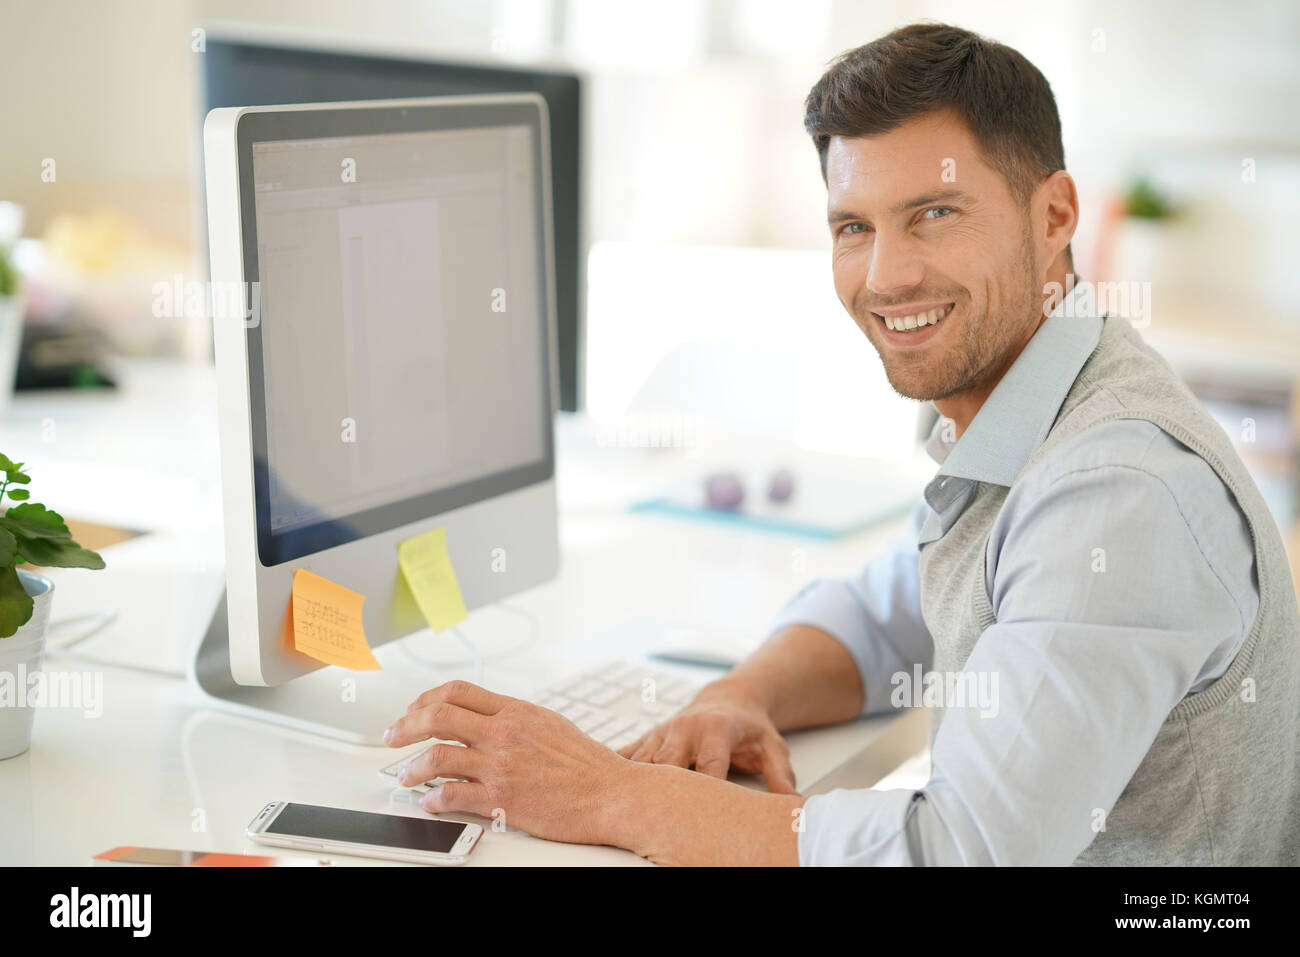 Handsome businessman working on desktop computer in office Photo Stock